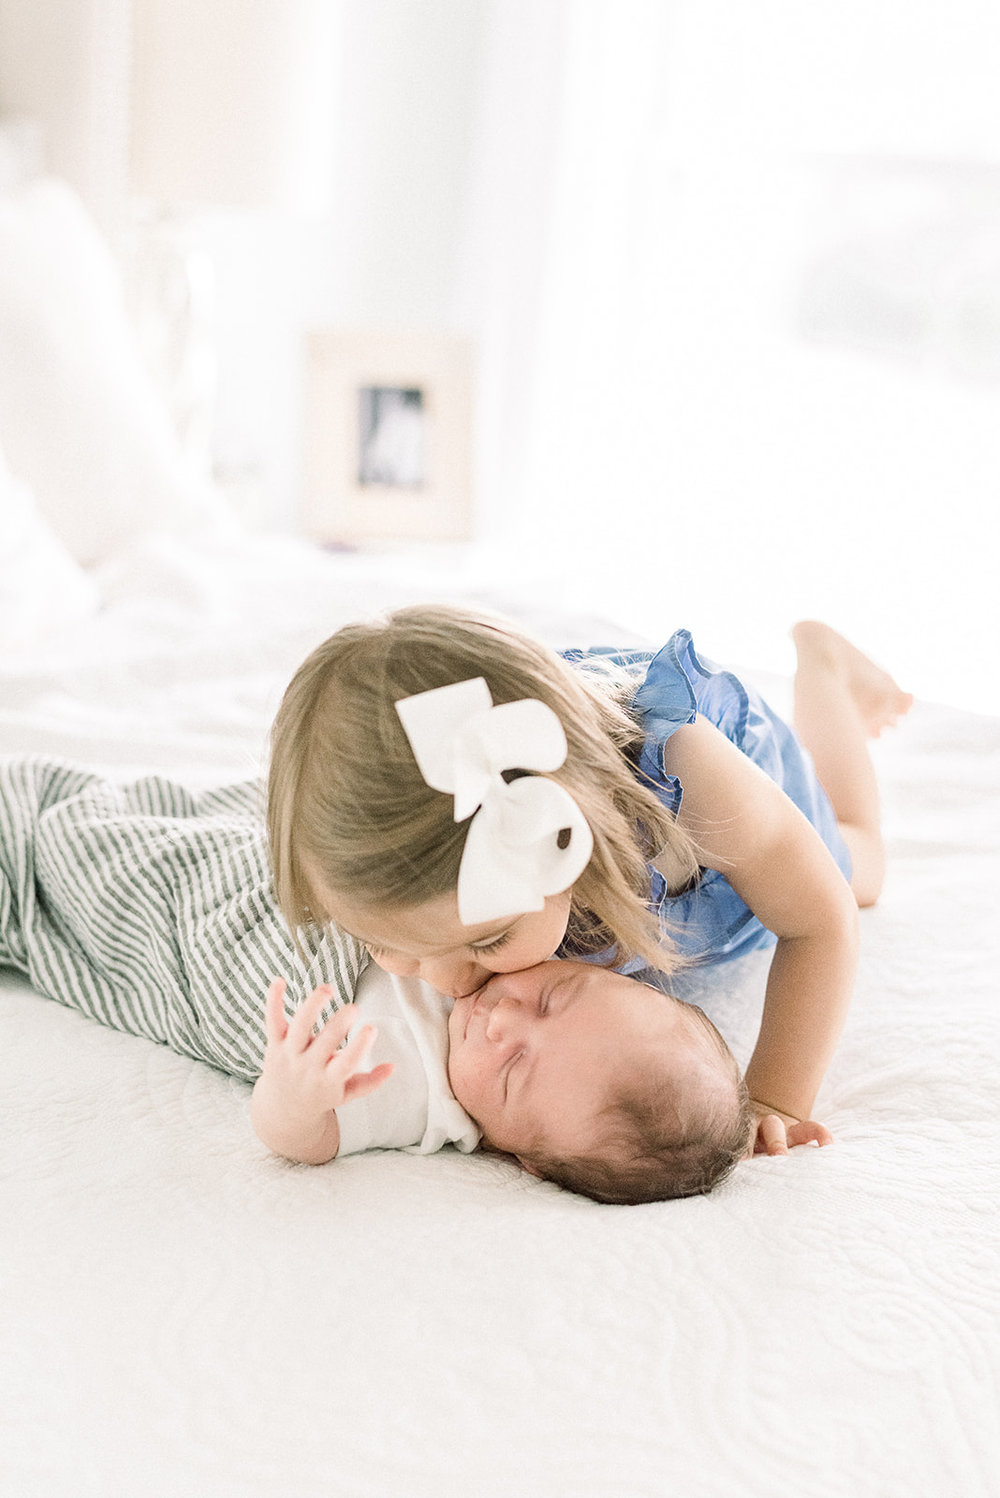 Saratoga Springs NY Newborn Photographer